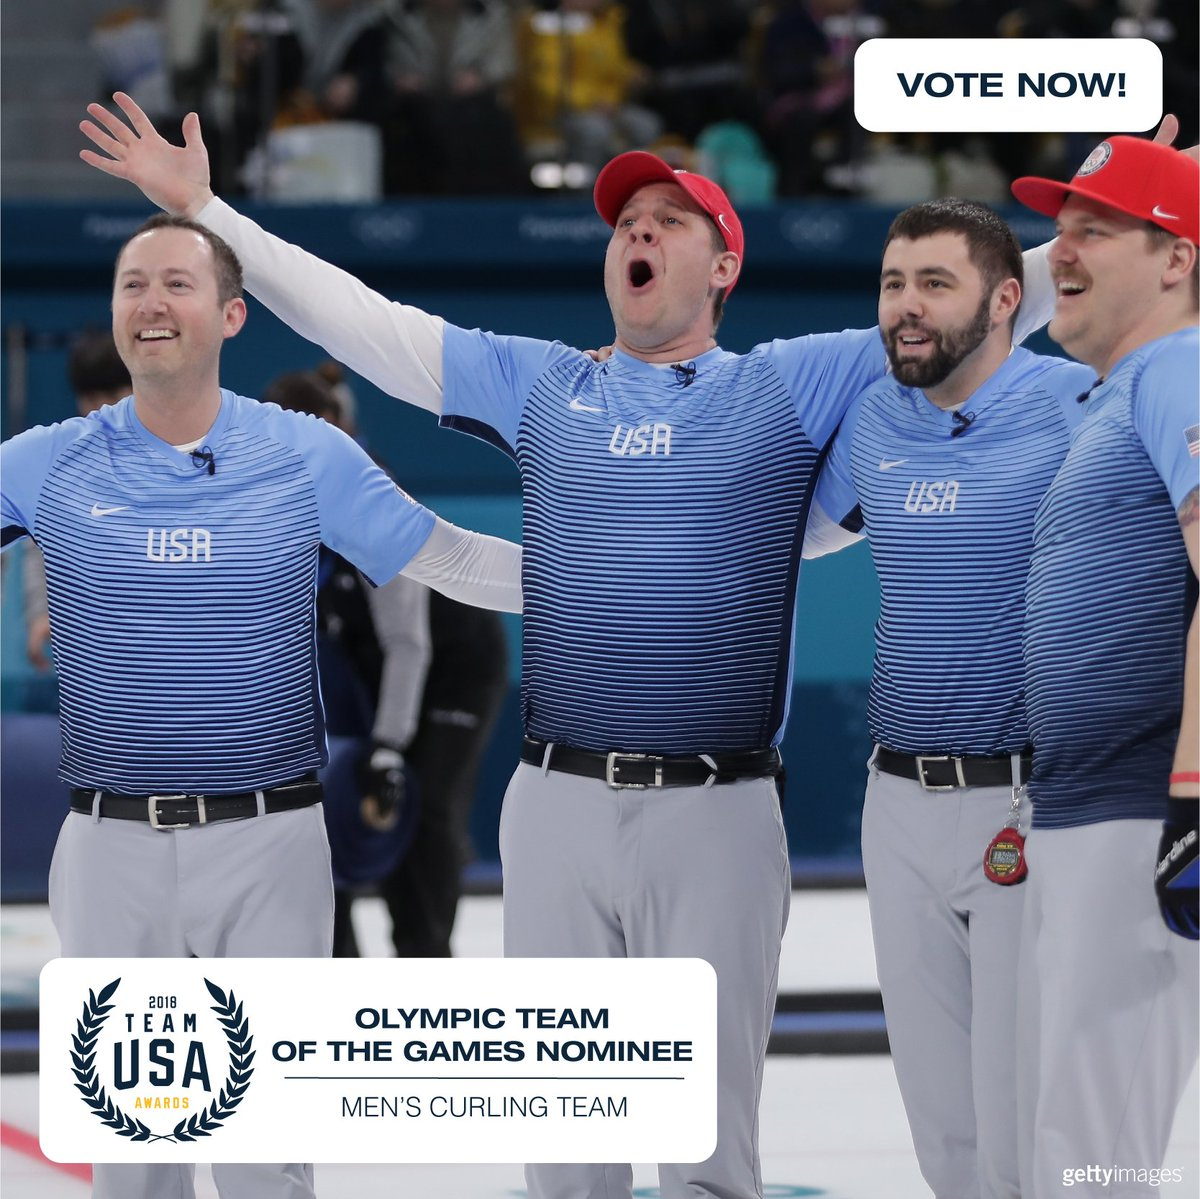 Vote now! Best of the Games nominee, Tea...